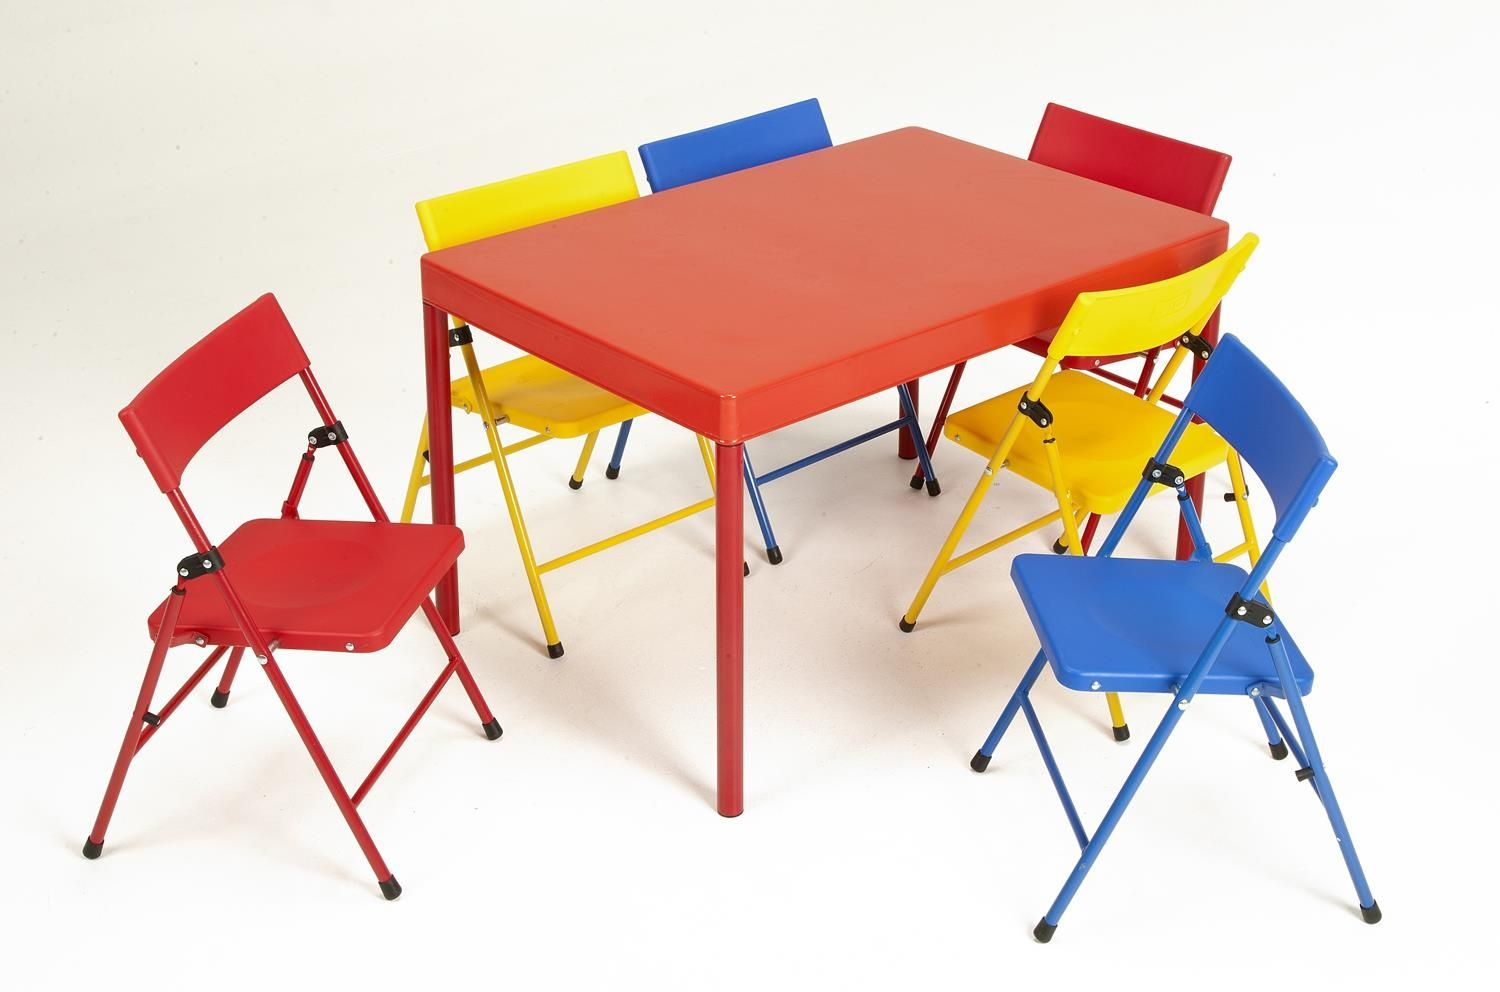 Childrens Folding Table And Chairs Childrens Table And Chair Set Costco Kids Kids Table Chair Set